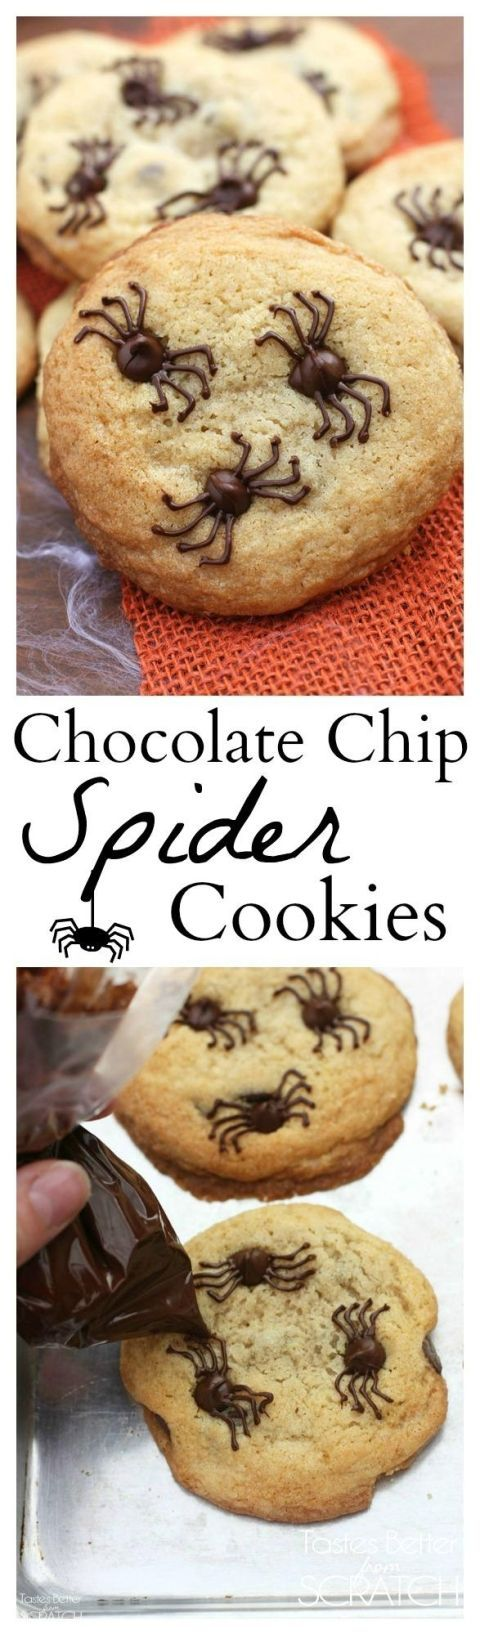 Chocolate Chip Spider Cookies make the perfect fun and easy Halloween treat! | Tastes Better From Scratch (Gluten Free Recipes Thanksgiving)